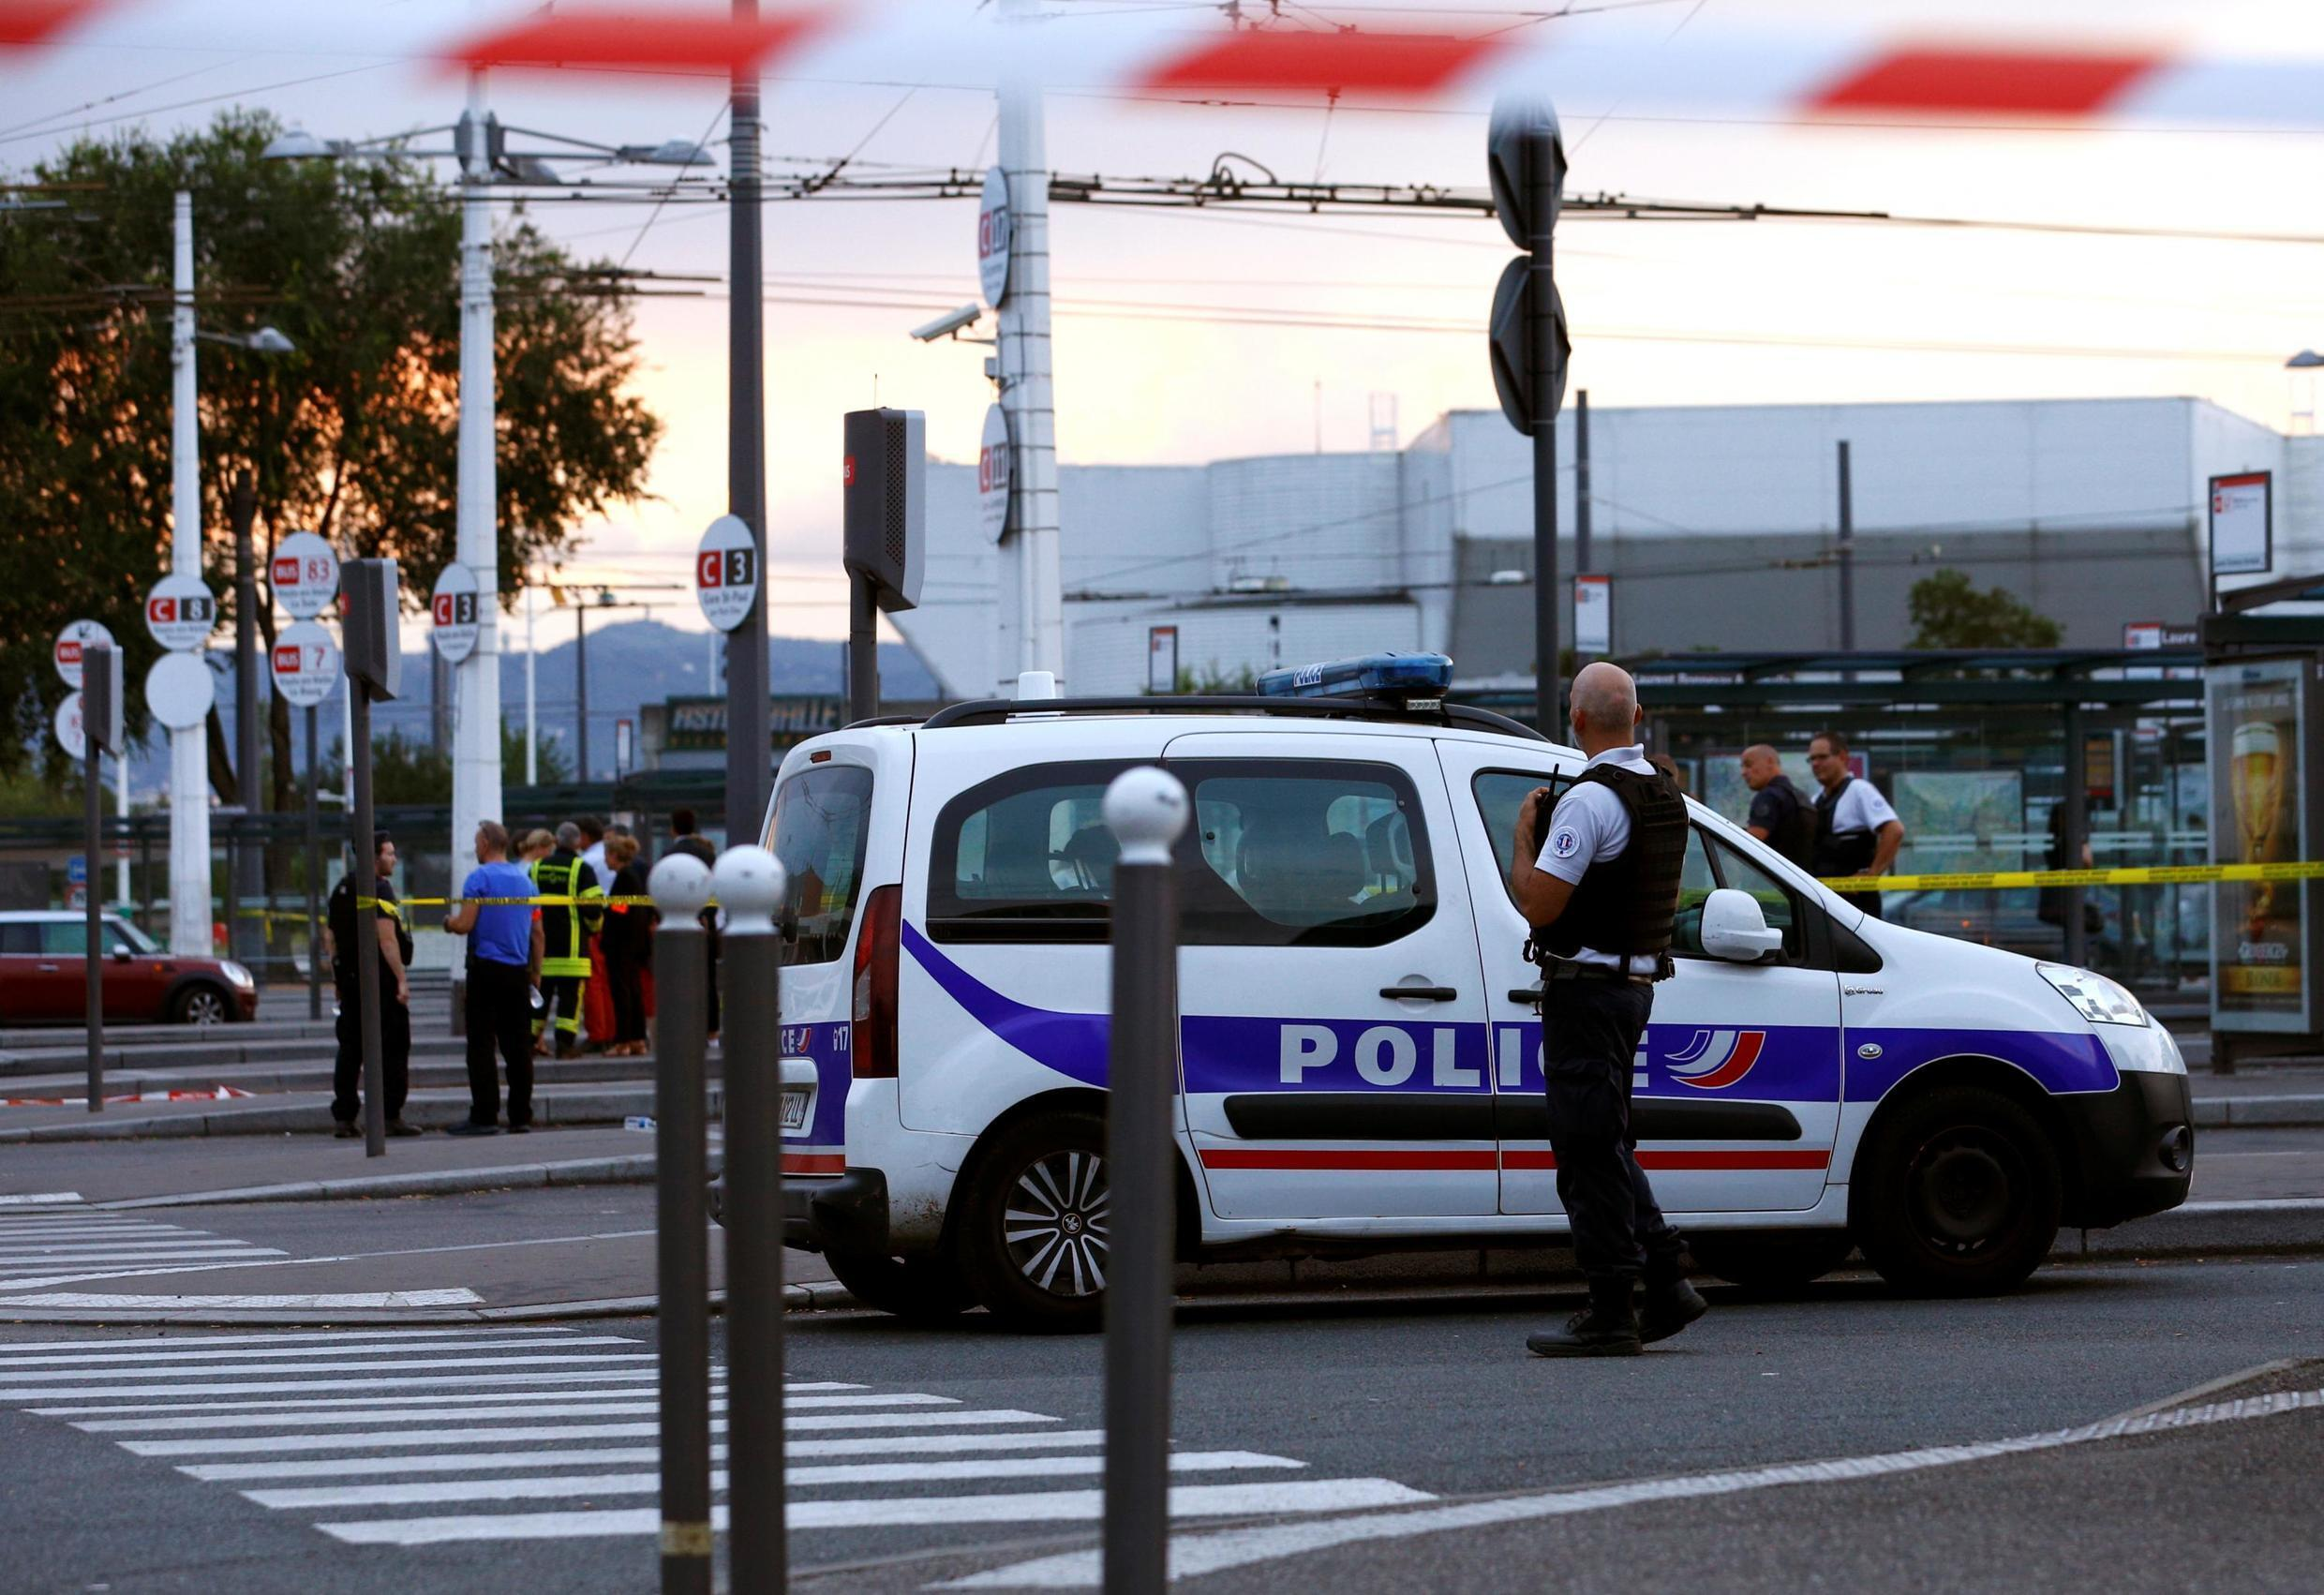 French police secure the area after one person was found dead and six others wounded in a suspected knife attack in Villeurbanne, near Lyon French police secure the area after one person was found dead and six others wounded in knife attack in Lyon.